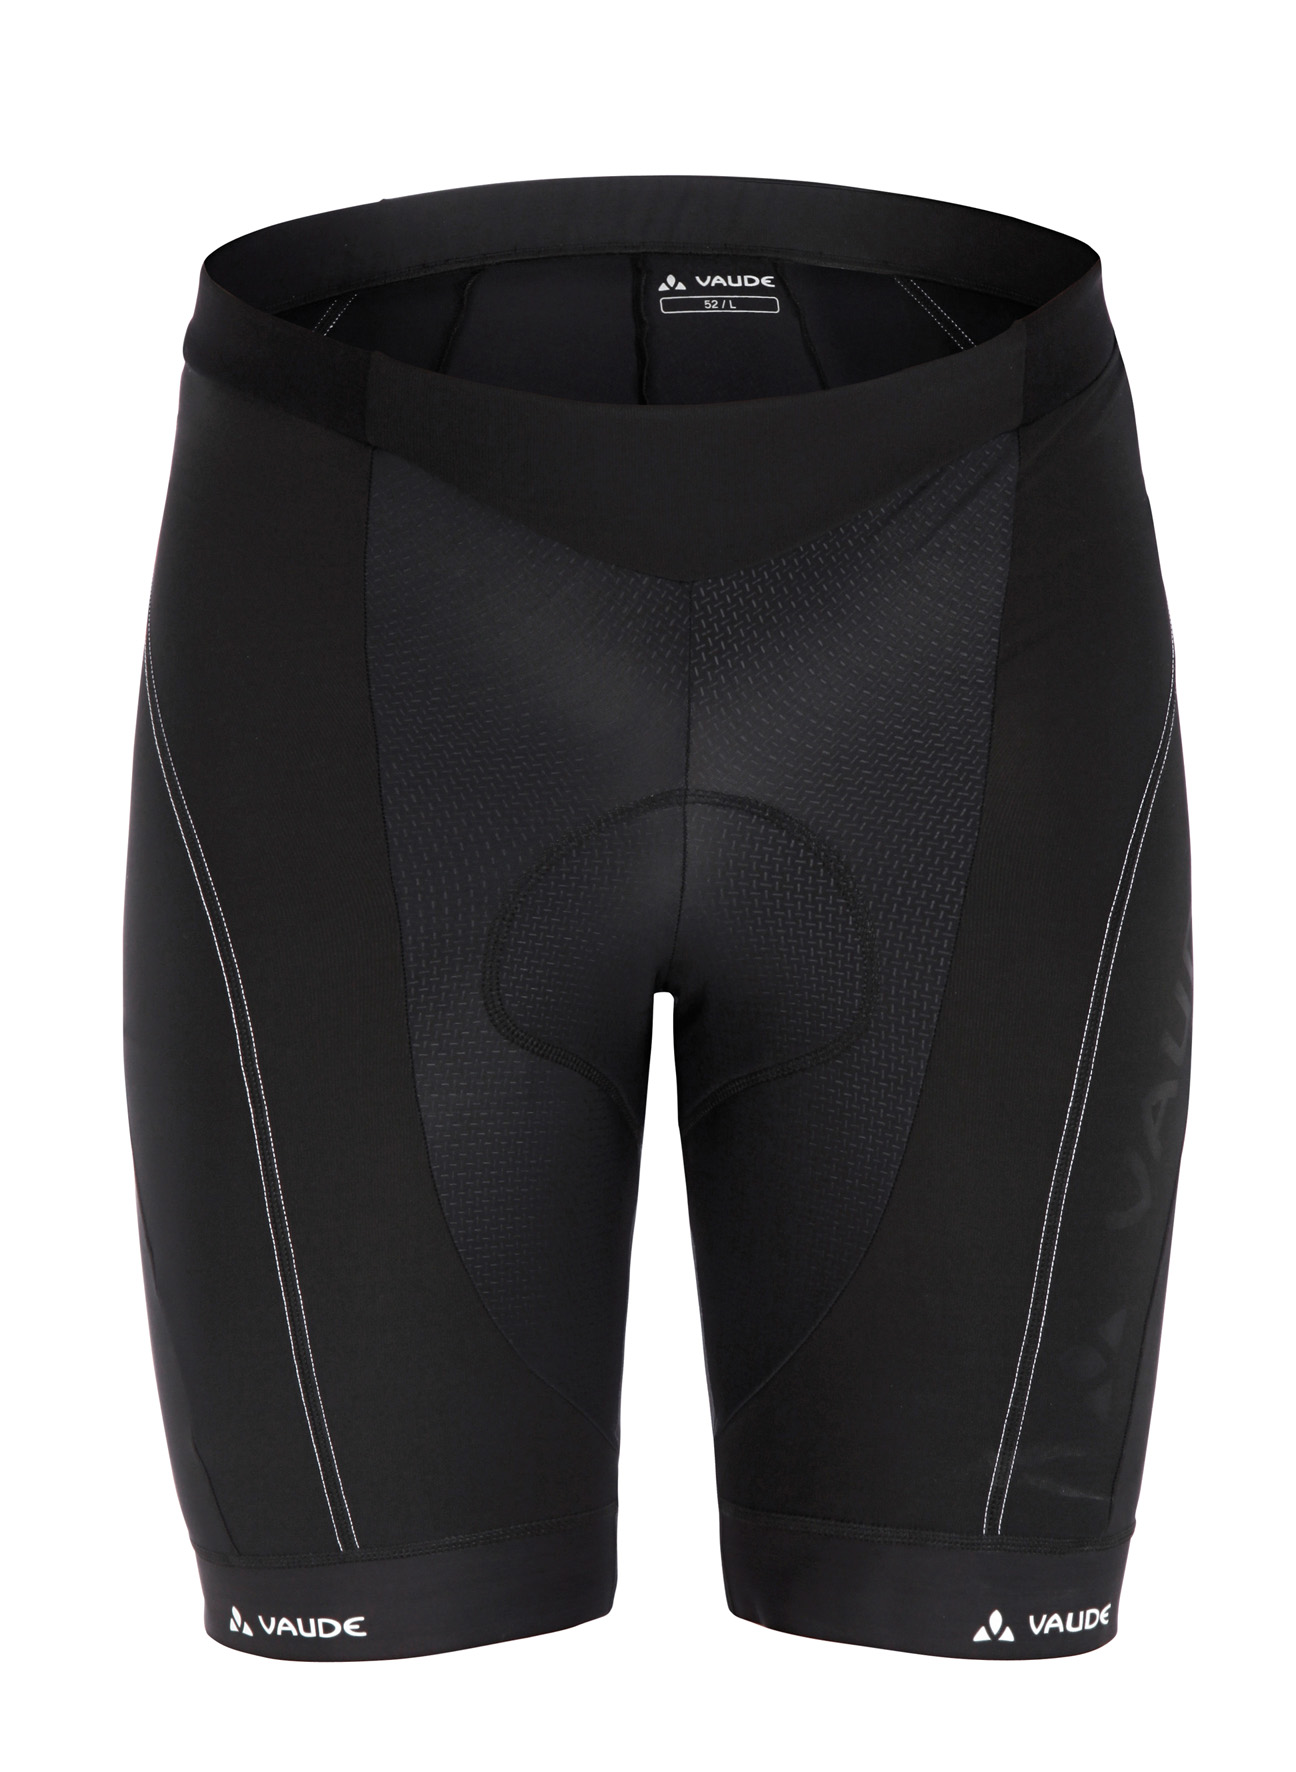 VAUDE Men´s Pro Pants black Größe XS - schneider-sports